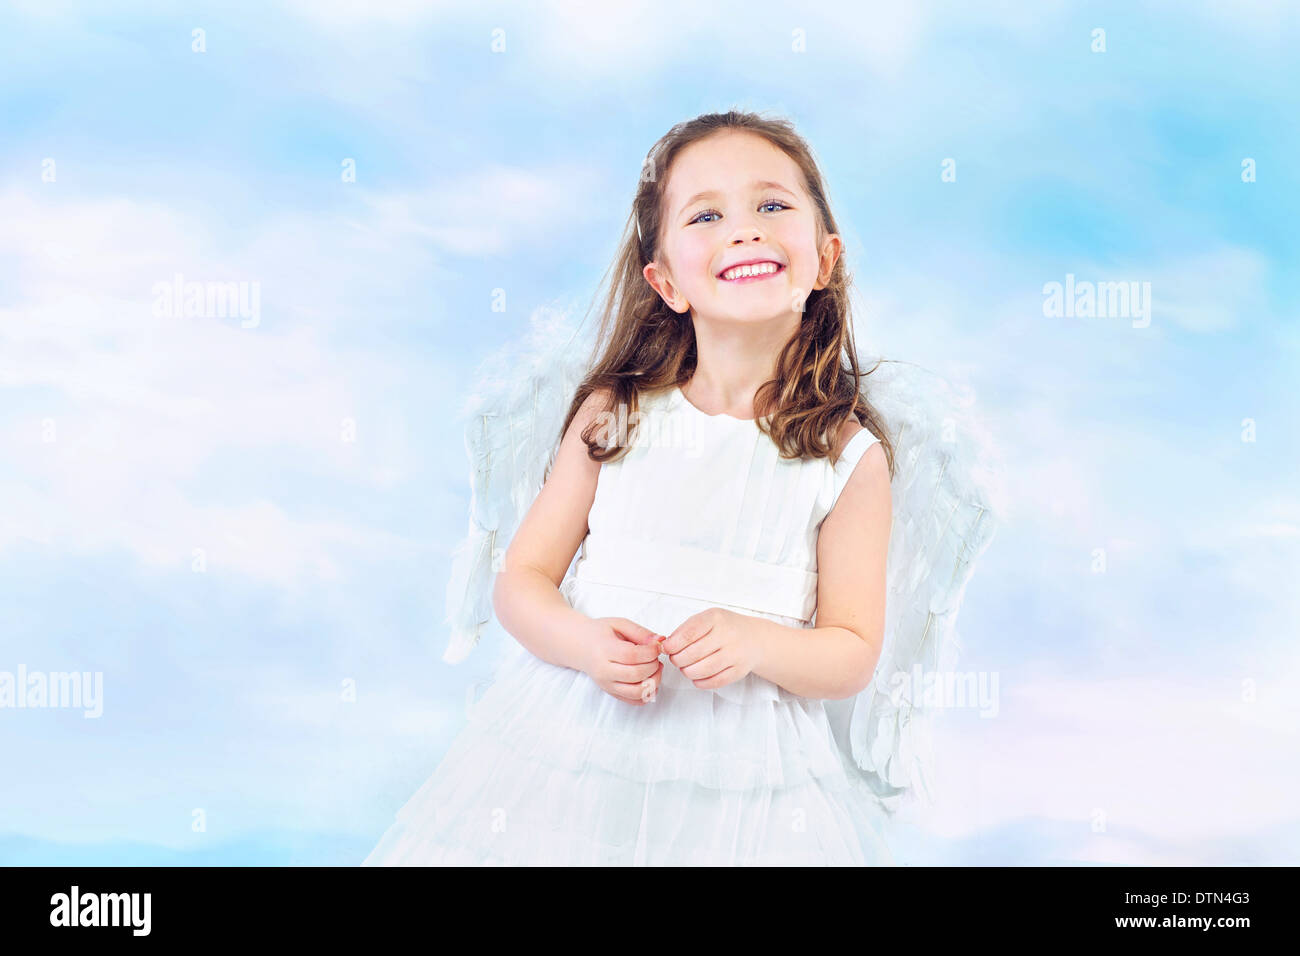 Cute little princess with pretty wide smile - Stock Image